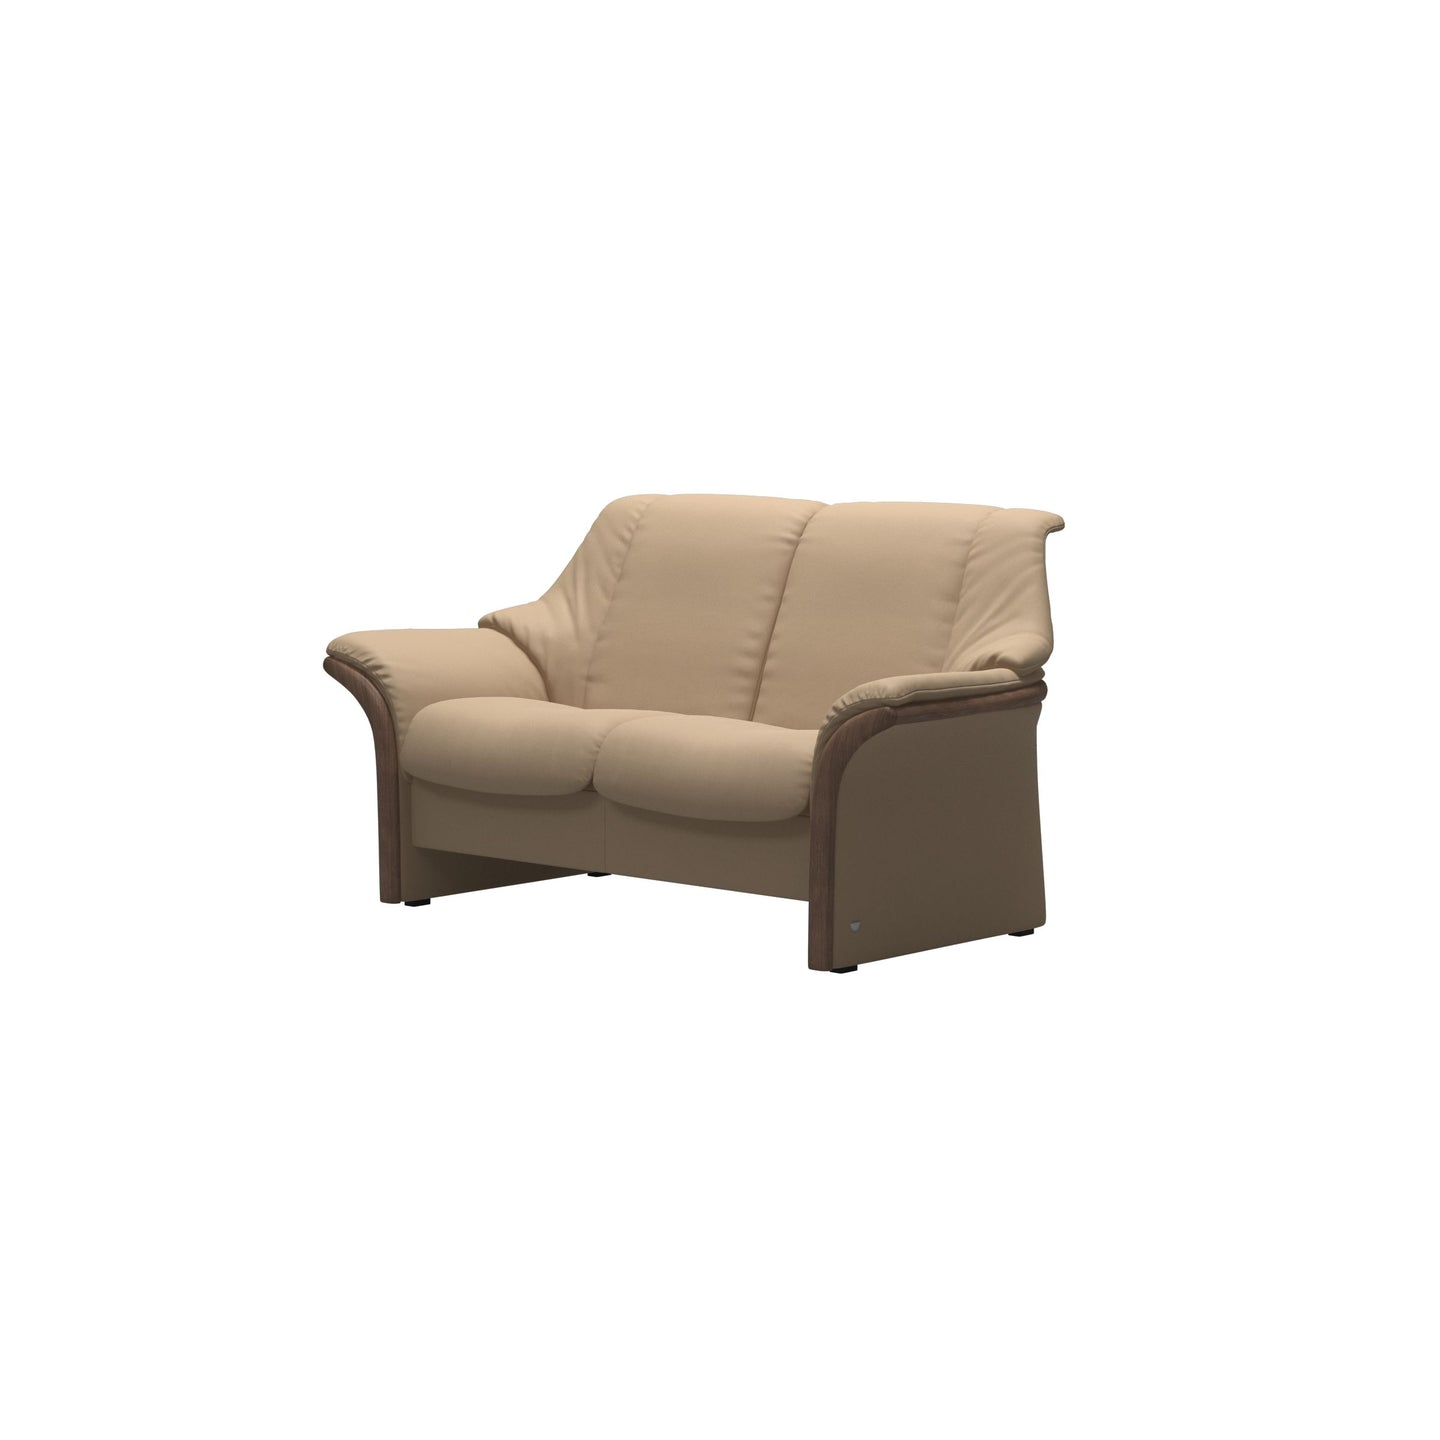 Stressless® Eldorado (M) 2 seater Low back